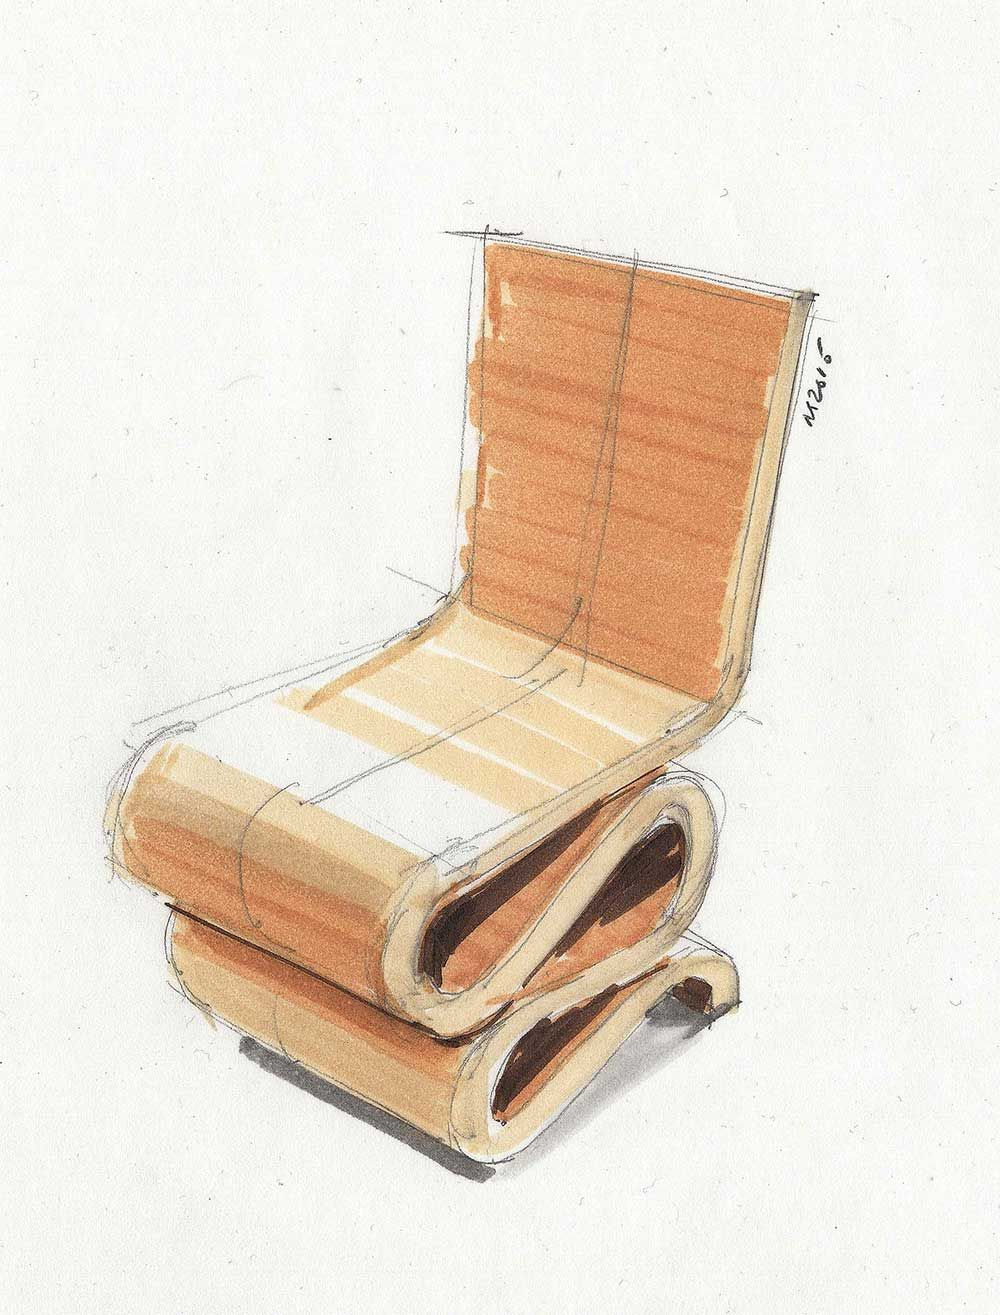 Car Möbel Outlet Frank Garry Cardboard Chair. Fun To Draw - 15min. Used